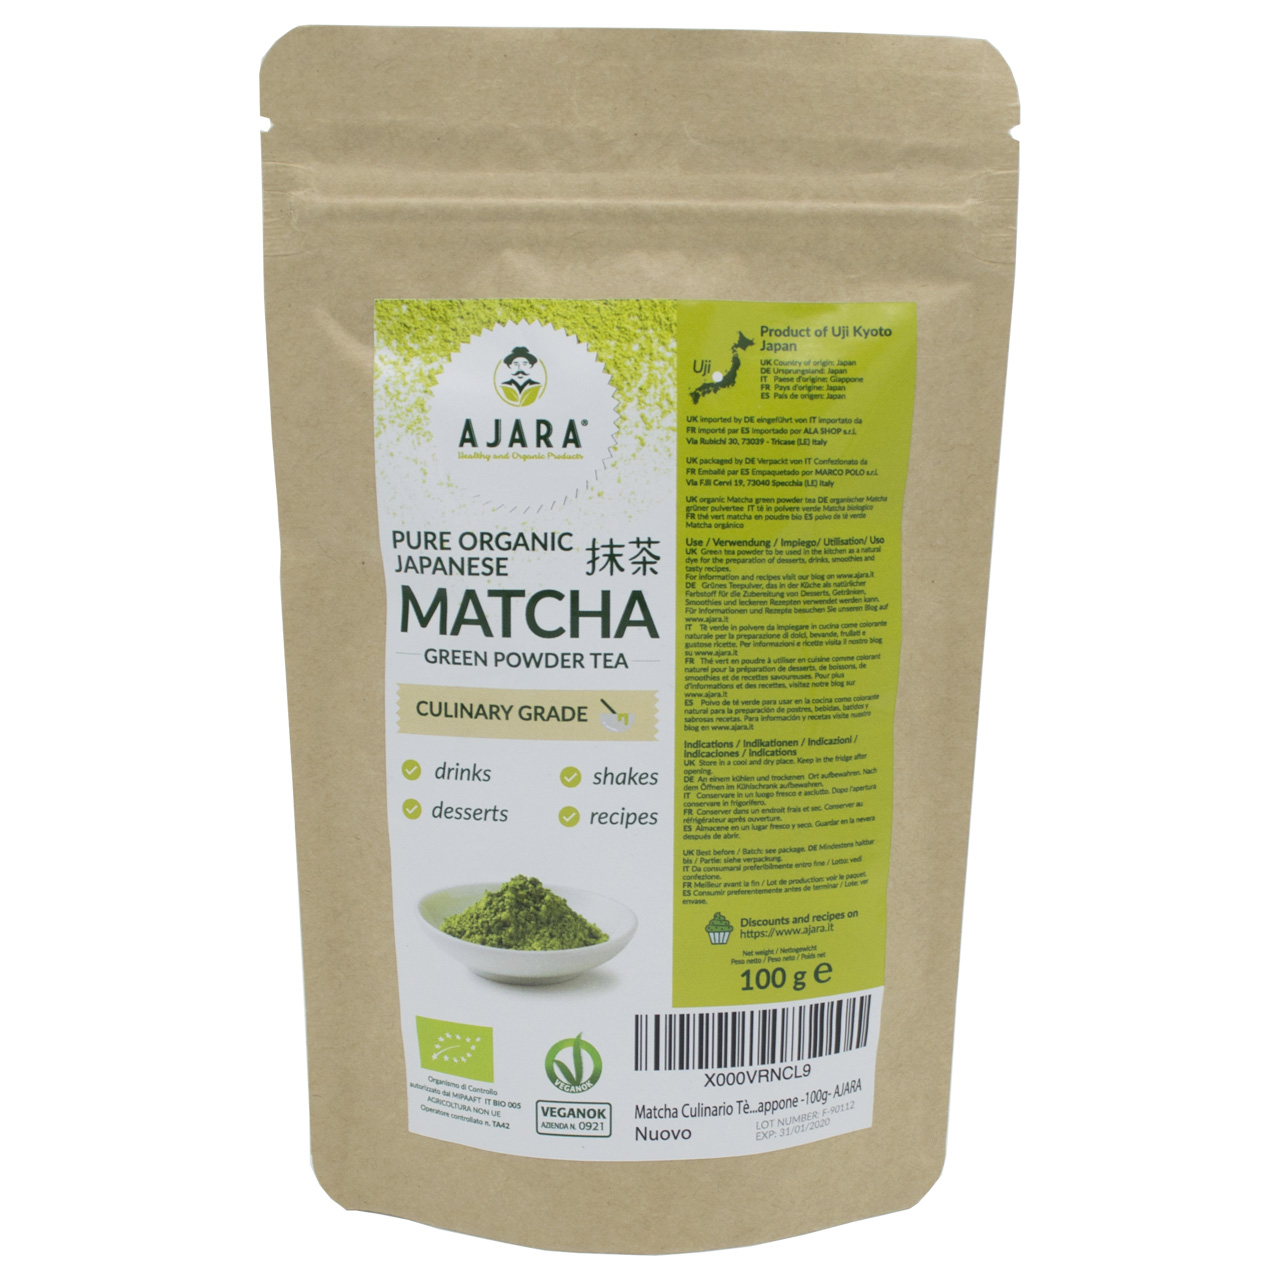 Matcha green tea culinary grade